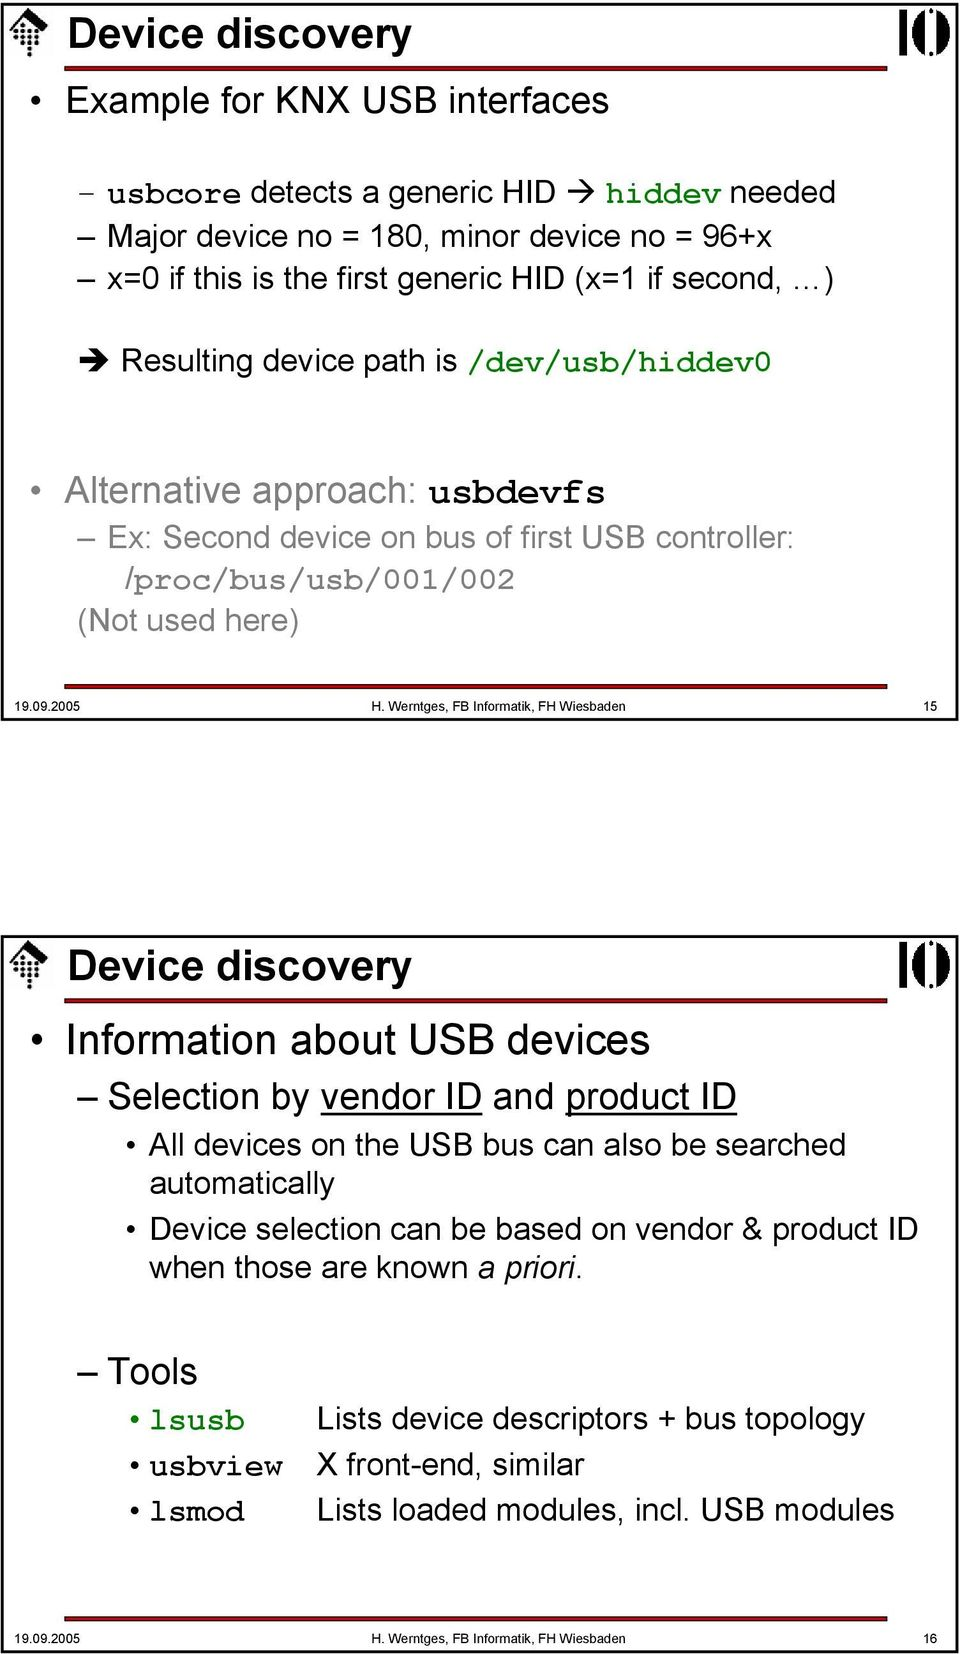 Werntges, FB Informatik, FH Wiesbaden 15 Device discovery Information about USB devices Selection by vendor ID and product ID All devices on the USB bus can also be searched automatically Device